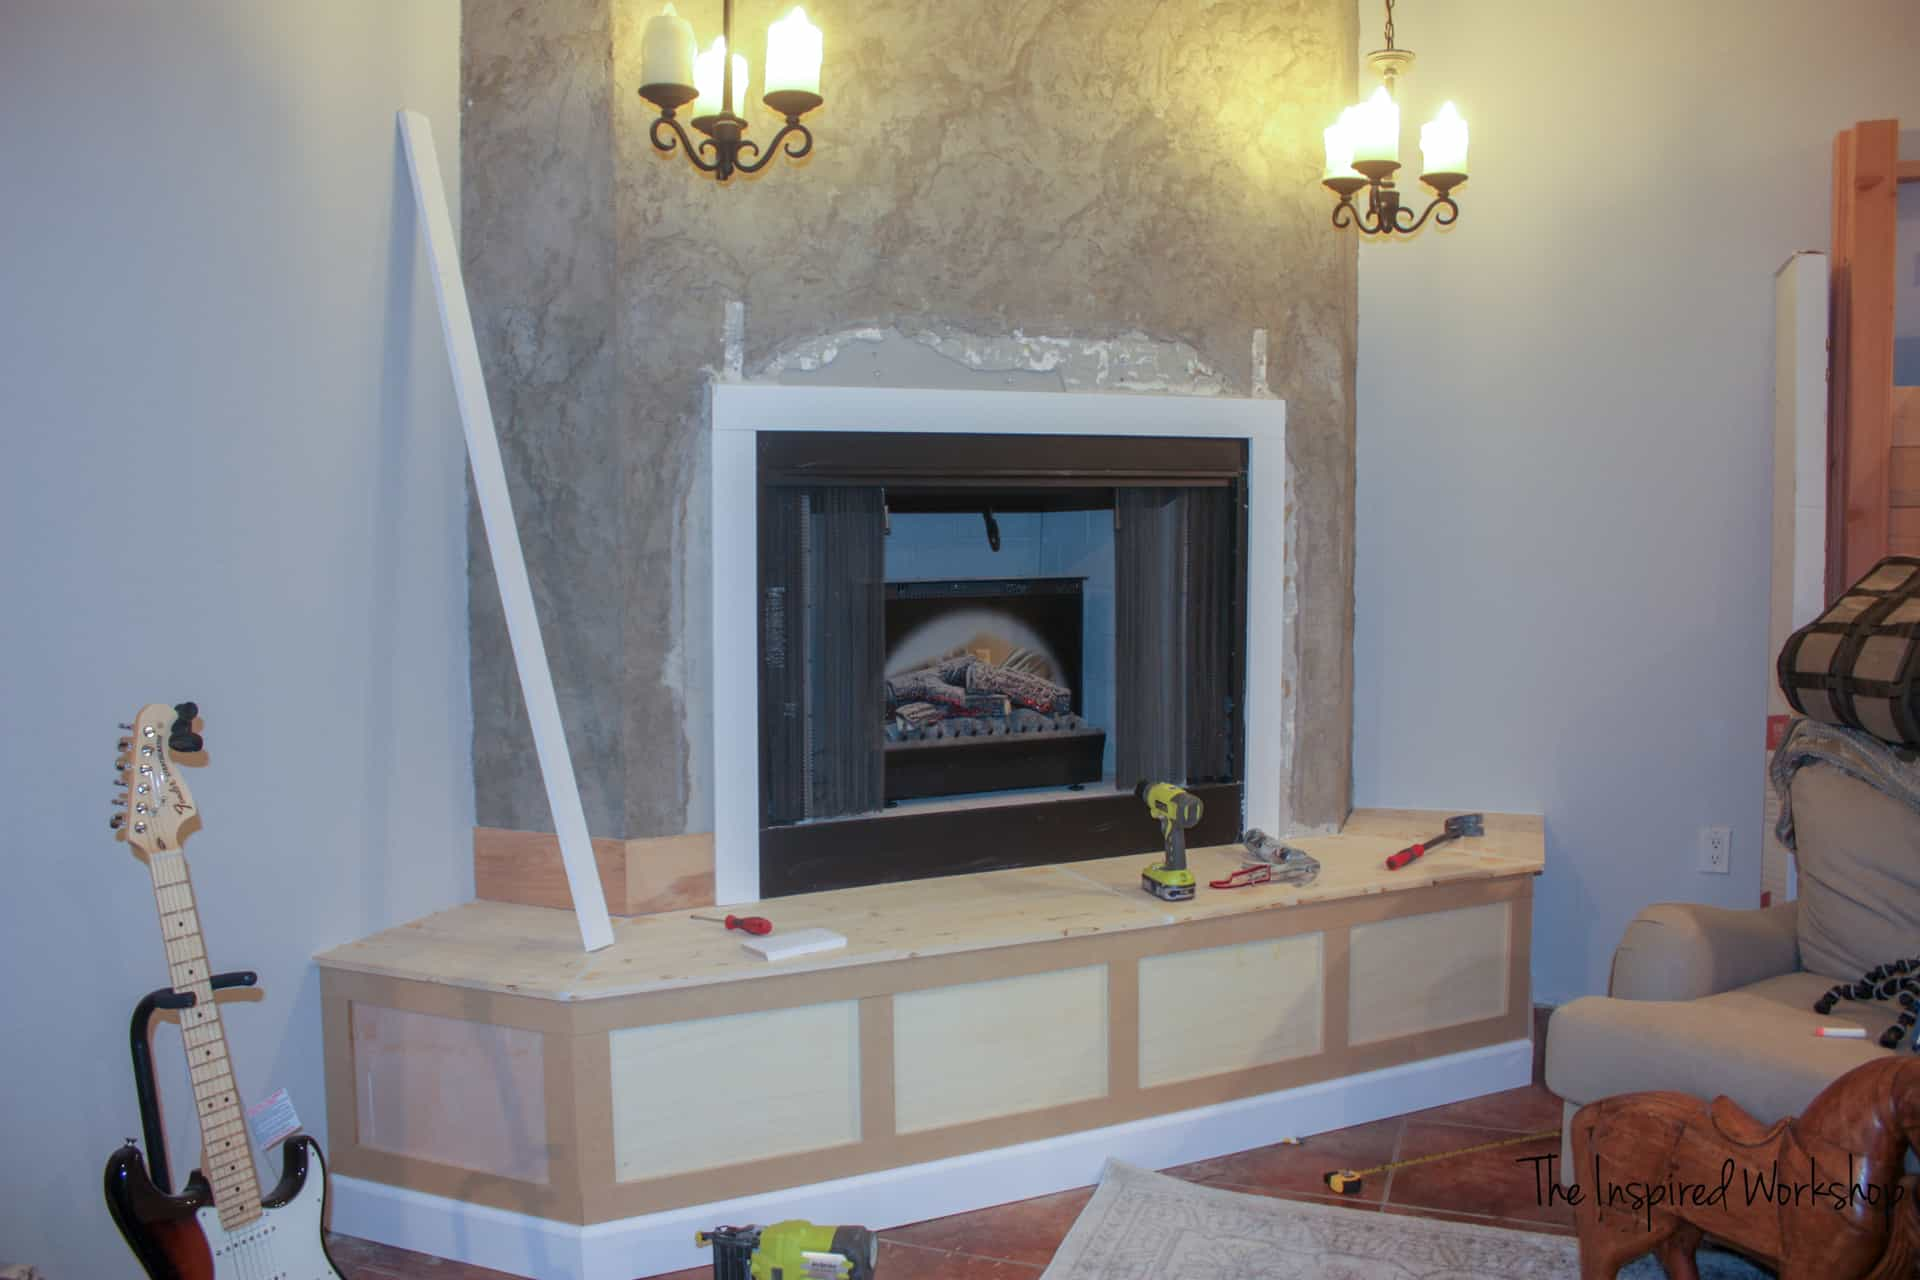 DIY Fireplace Makeover - Adding MDF to make squares out of molding